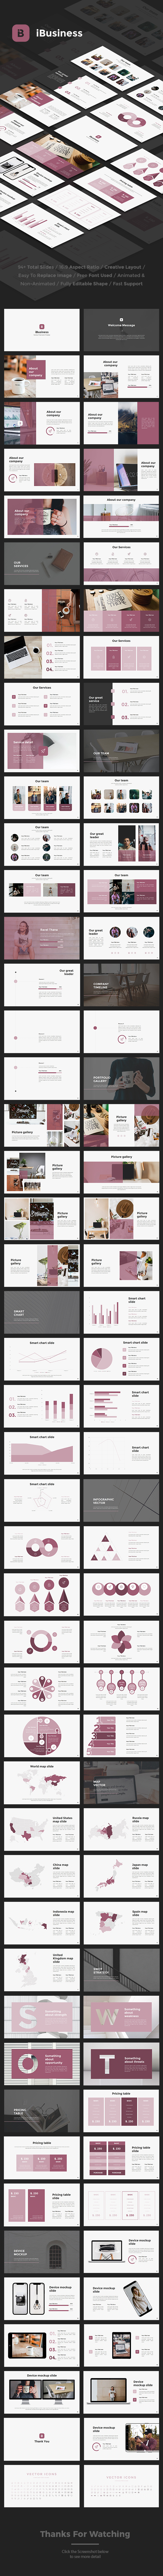 iBusiness Powerpoint - Business PowerPoint Templates